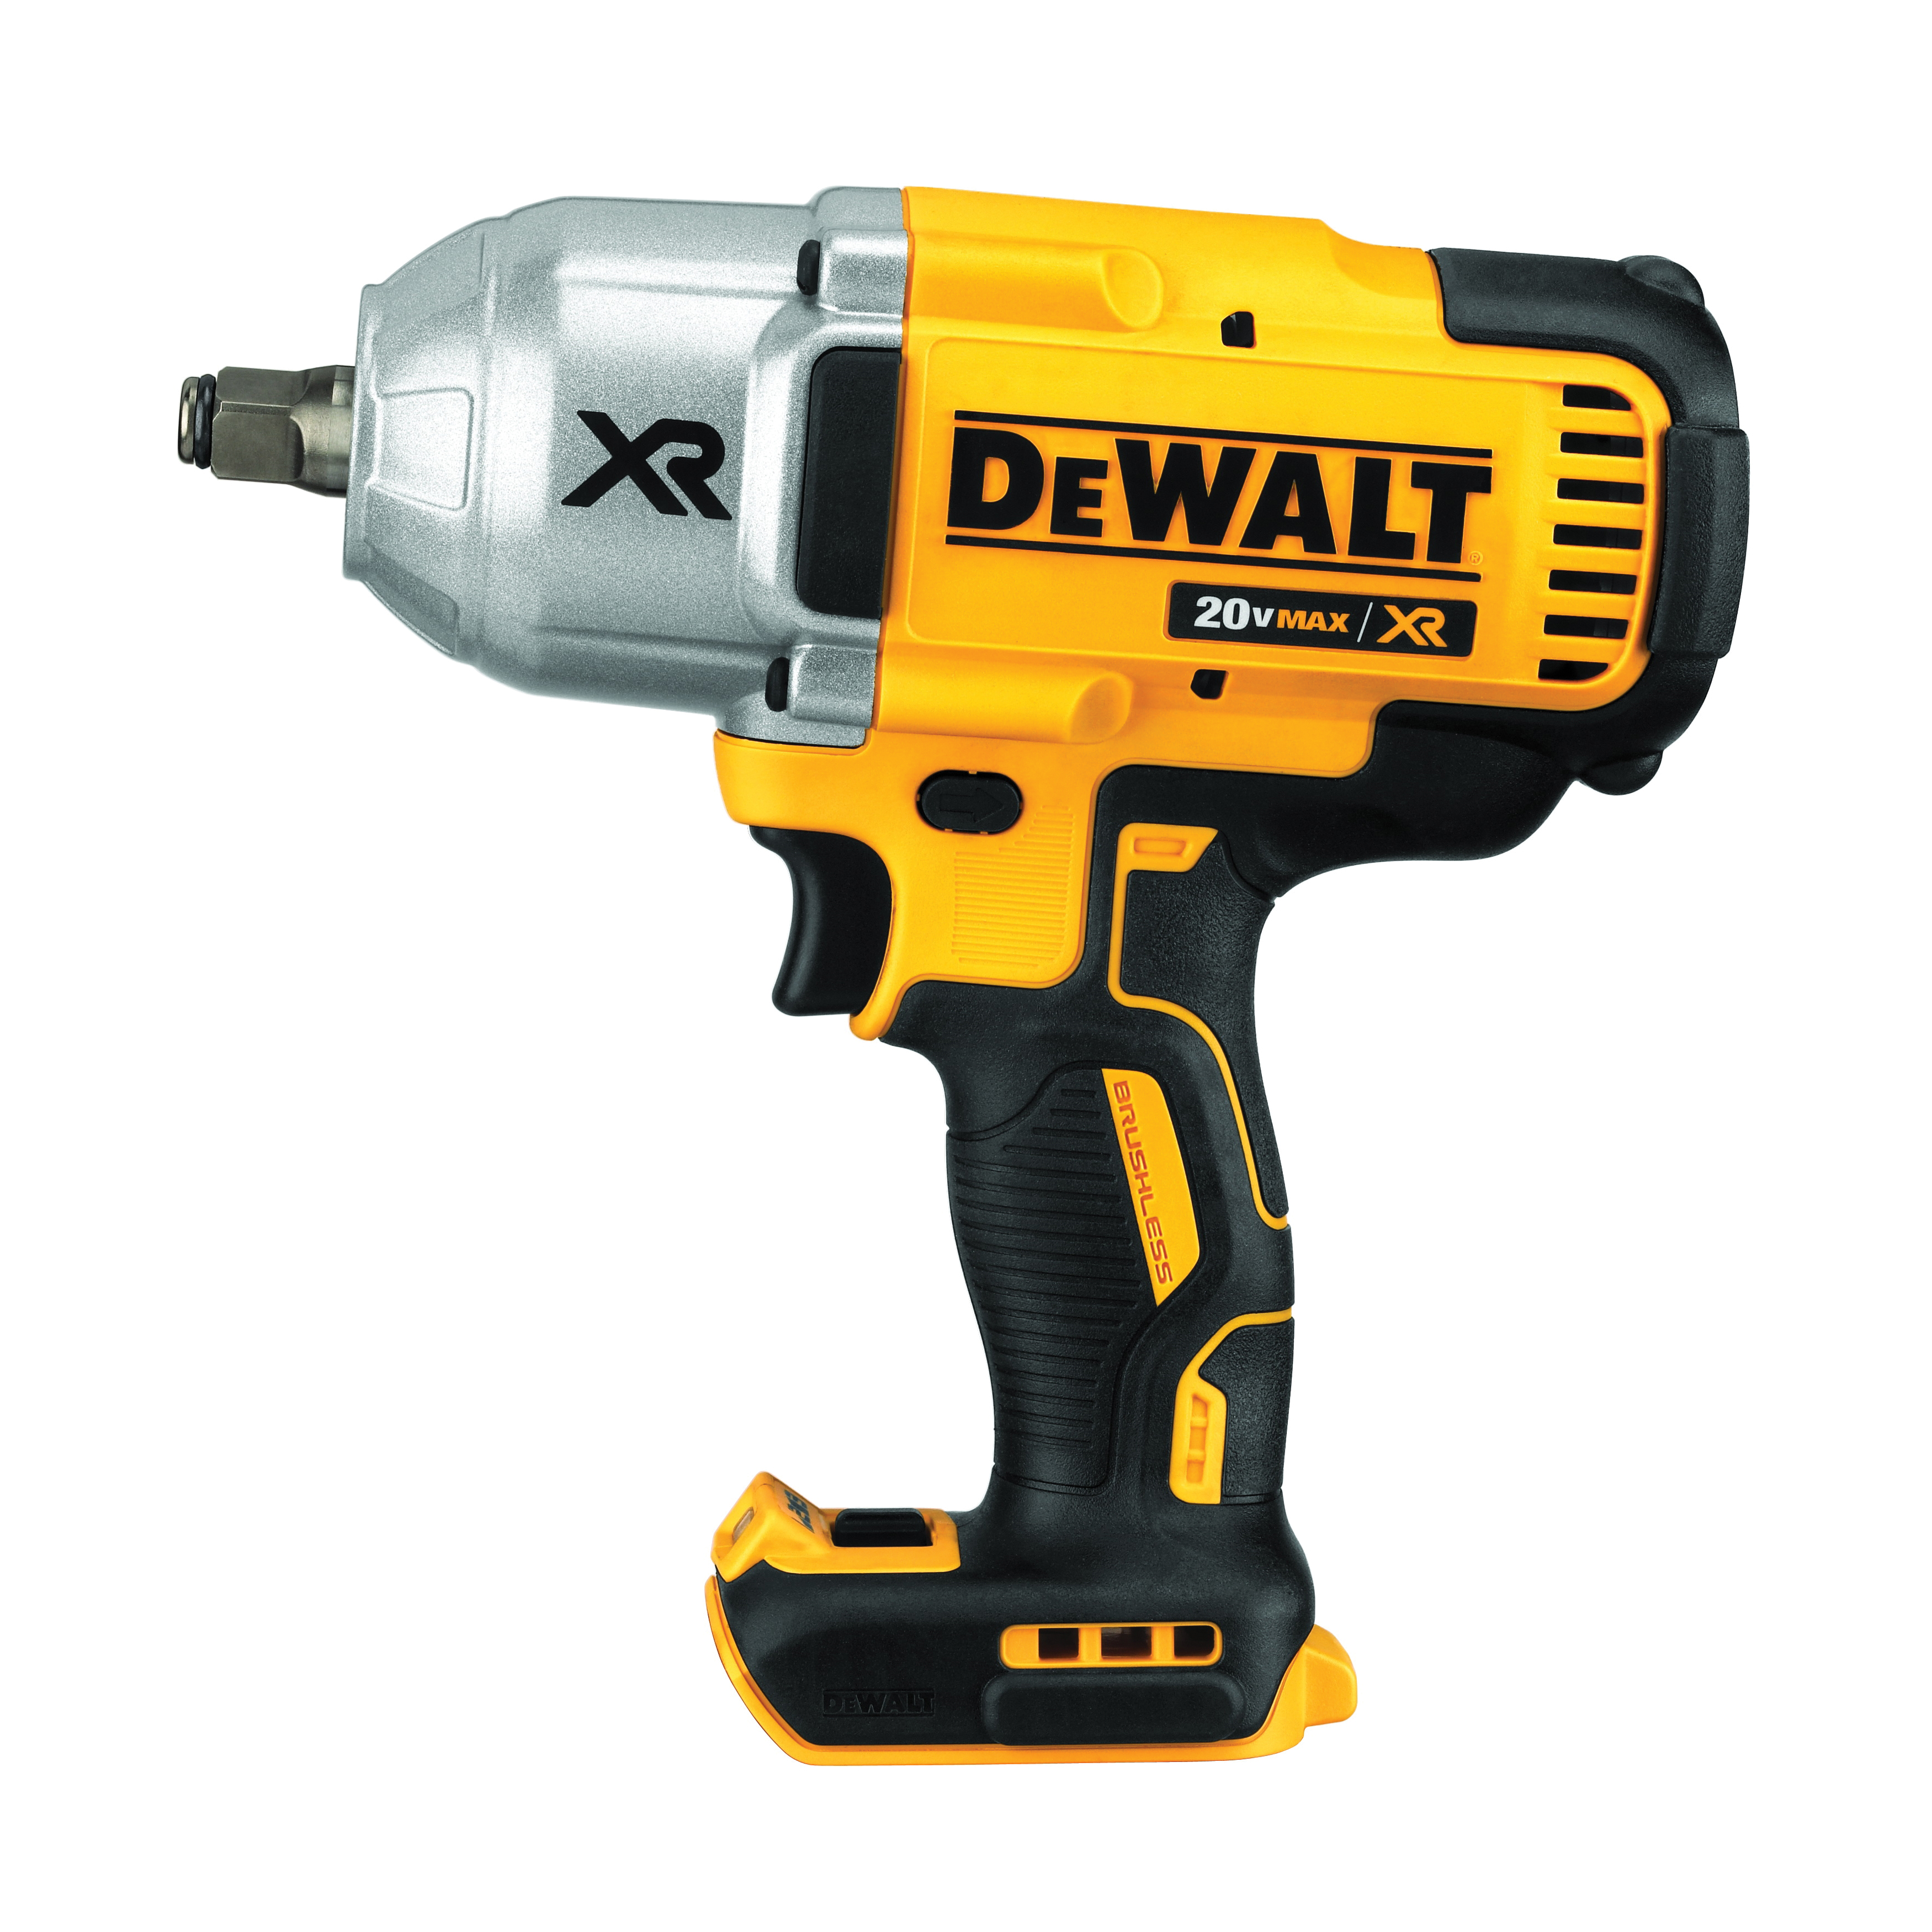 DeWALT® 20V MAX* MATRIX™ XR™ DCF899HB Compact Cordless Impact Wrench, 1/2 in Straight Drive, 700 ft-lb Torque, 20 VDC, 8-13/16 in OAL, Tool Only